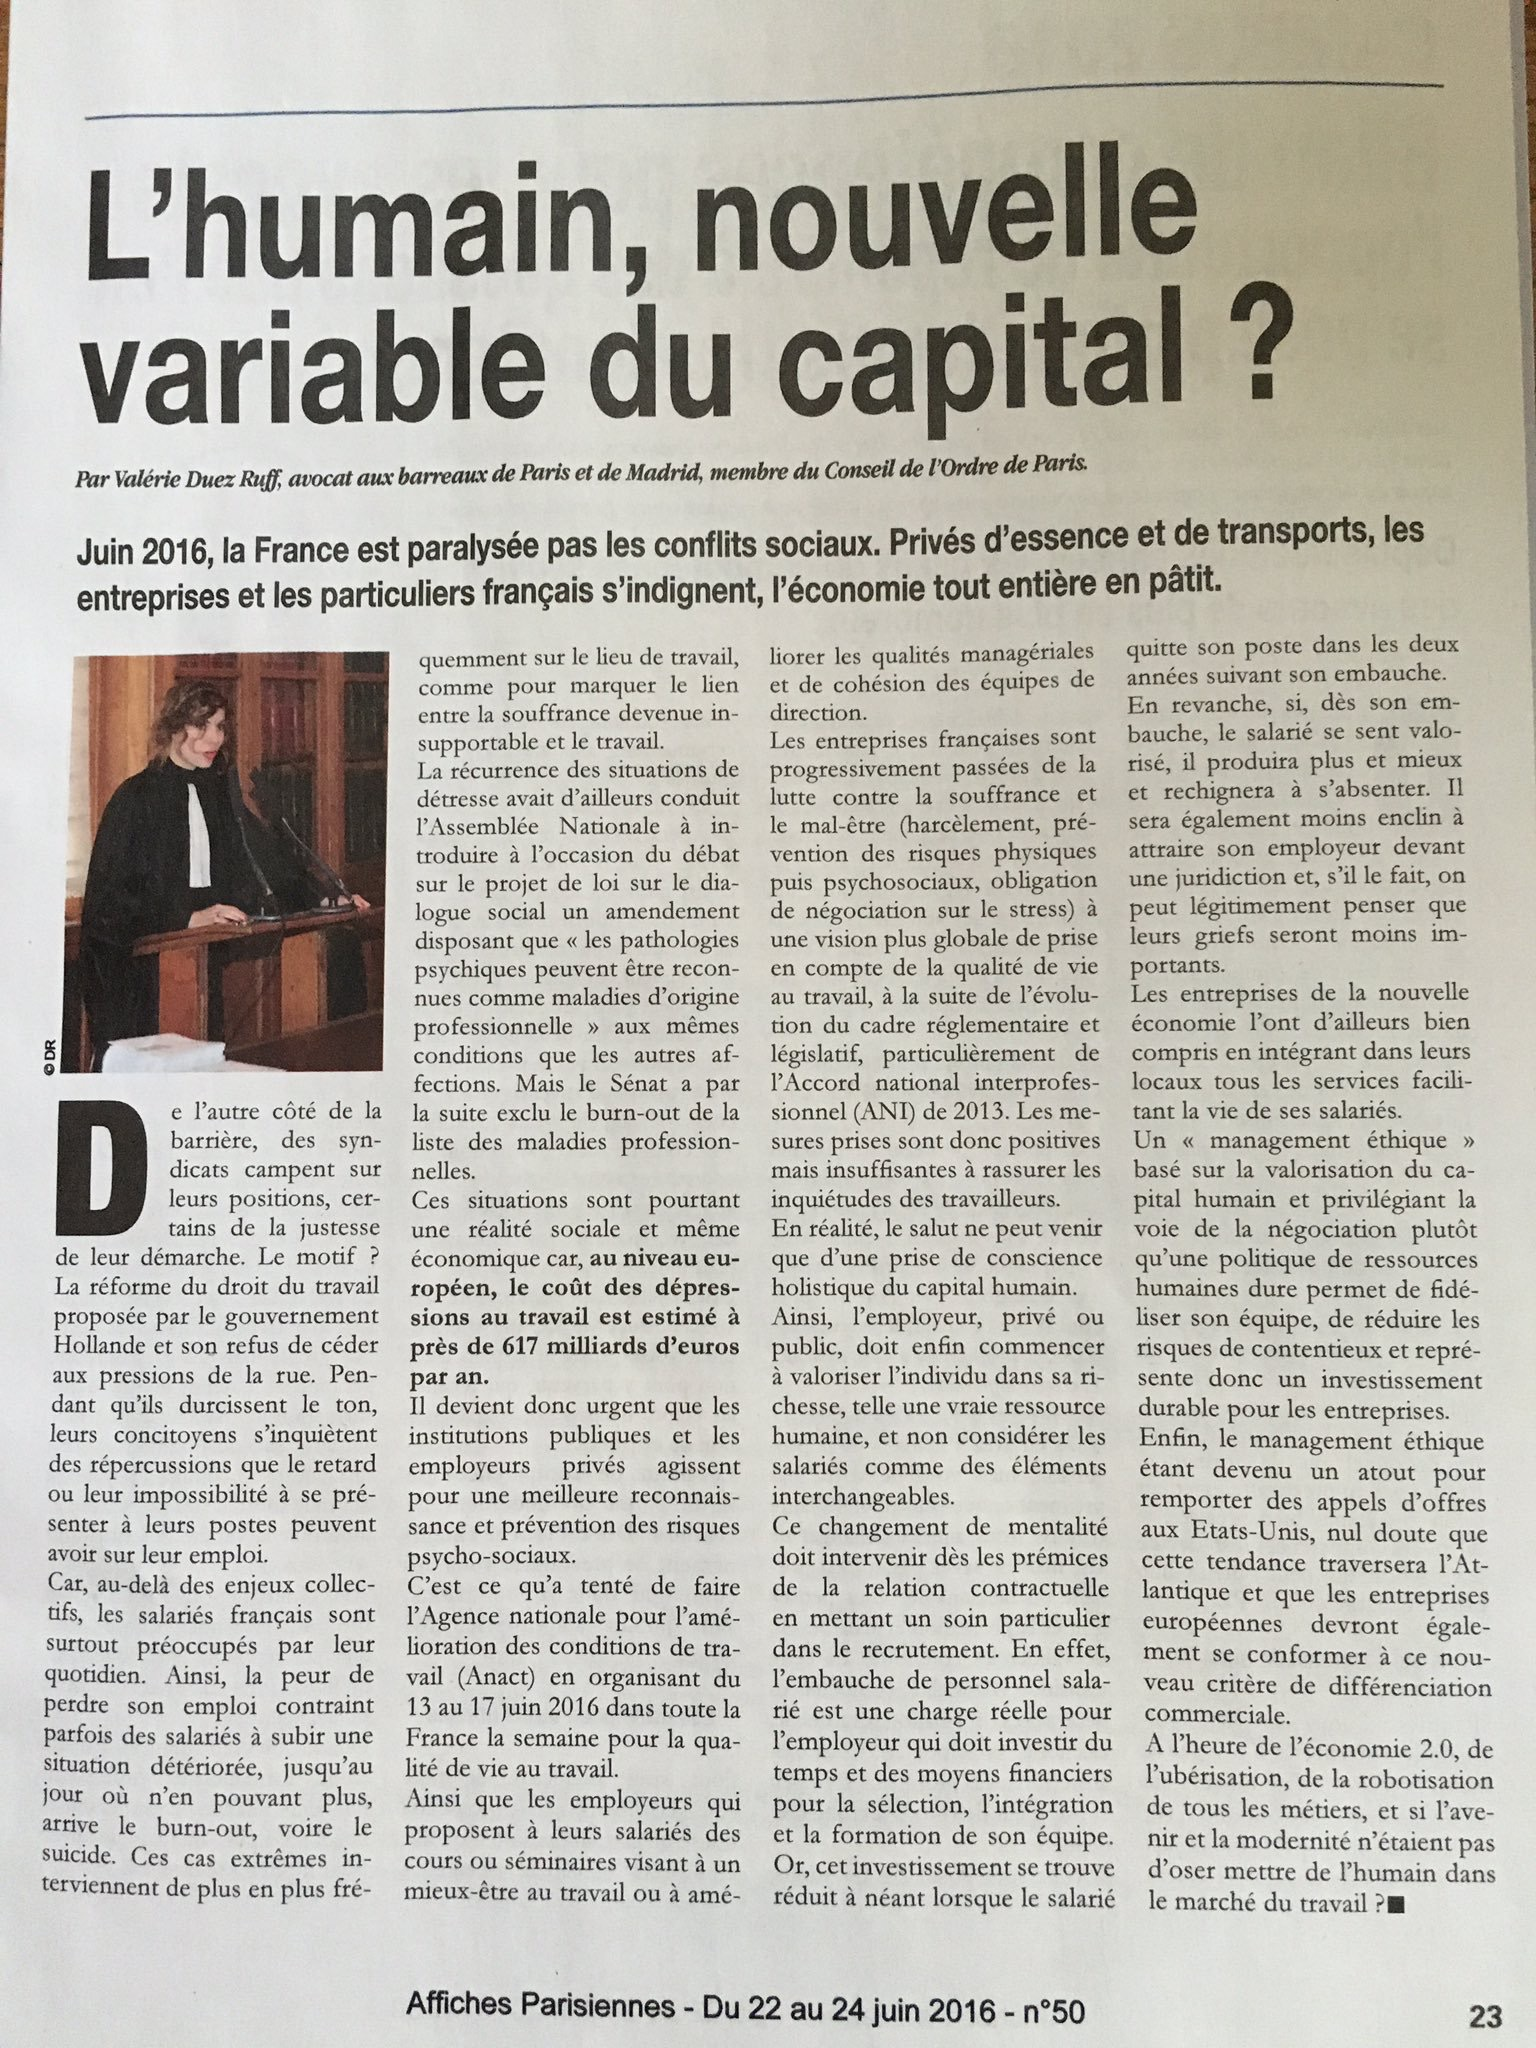 Le variable, nouvelle variable du capital?